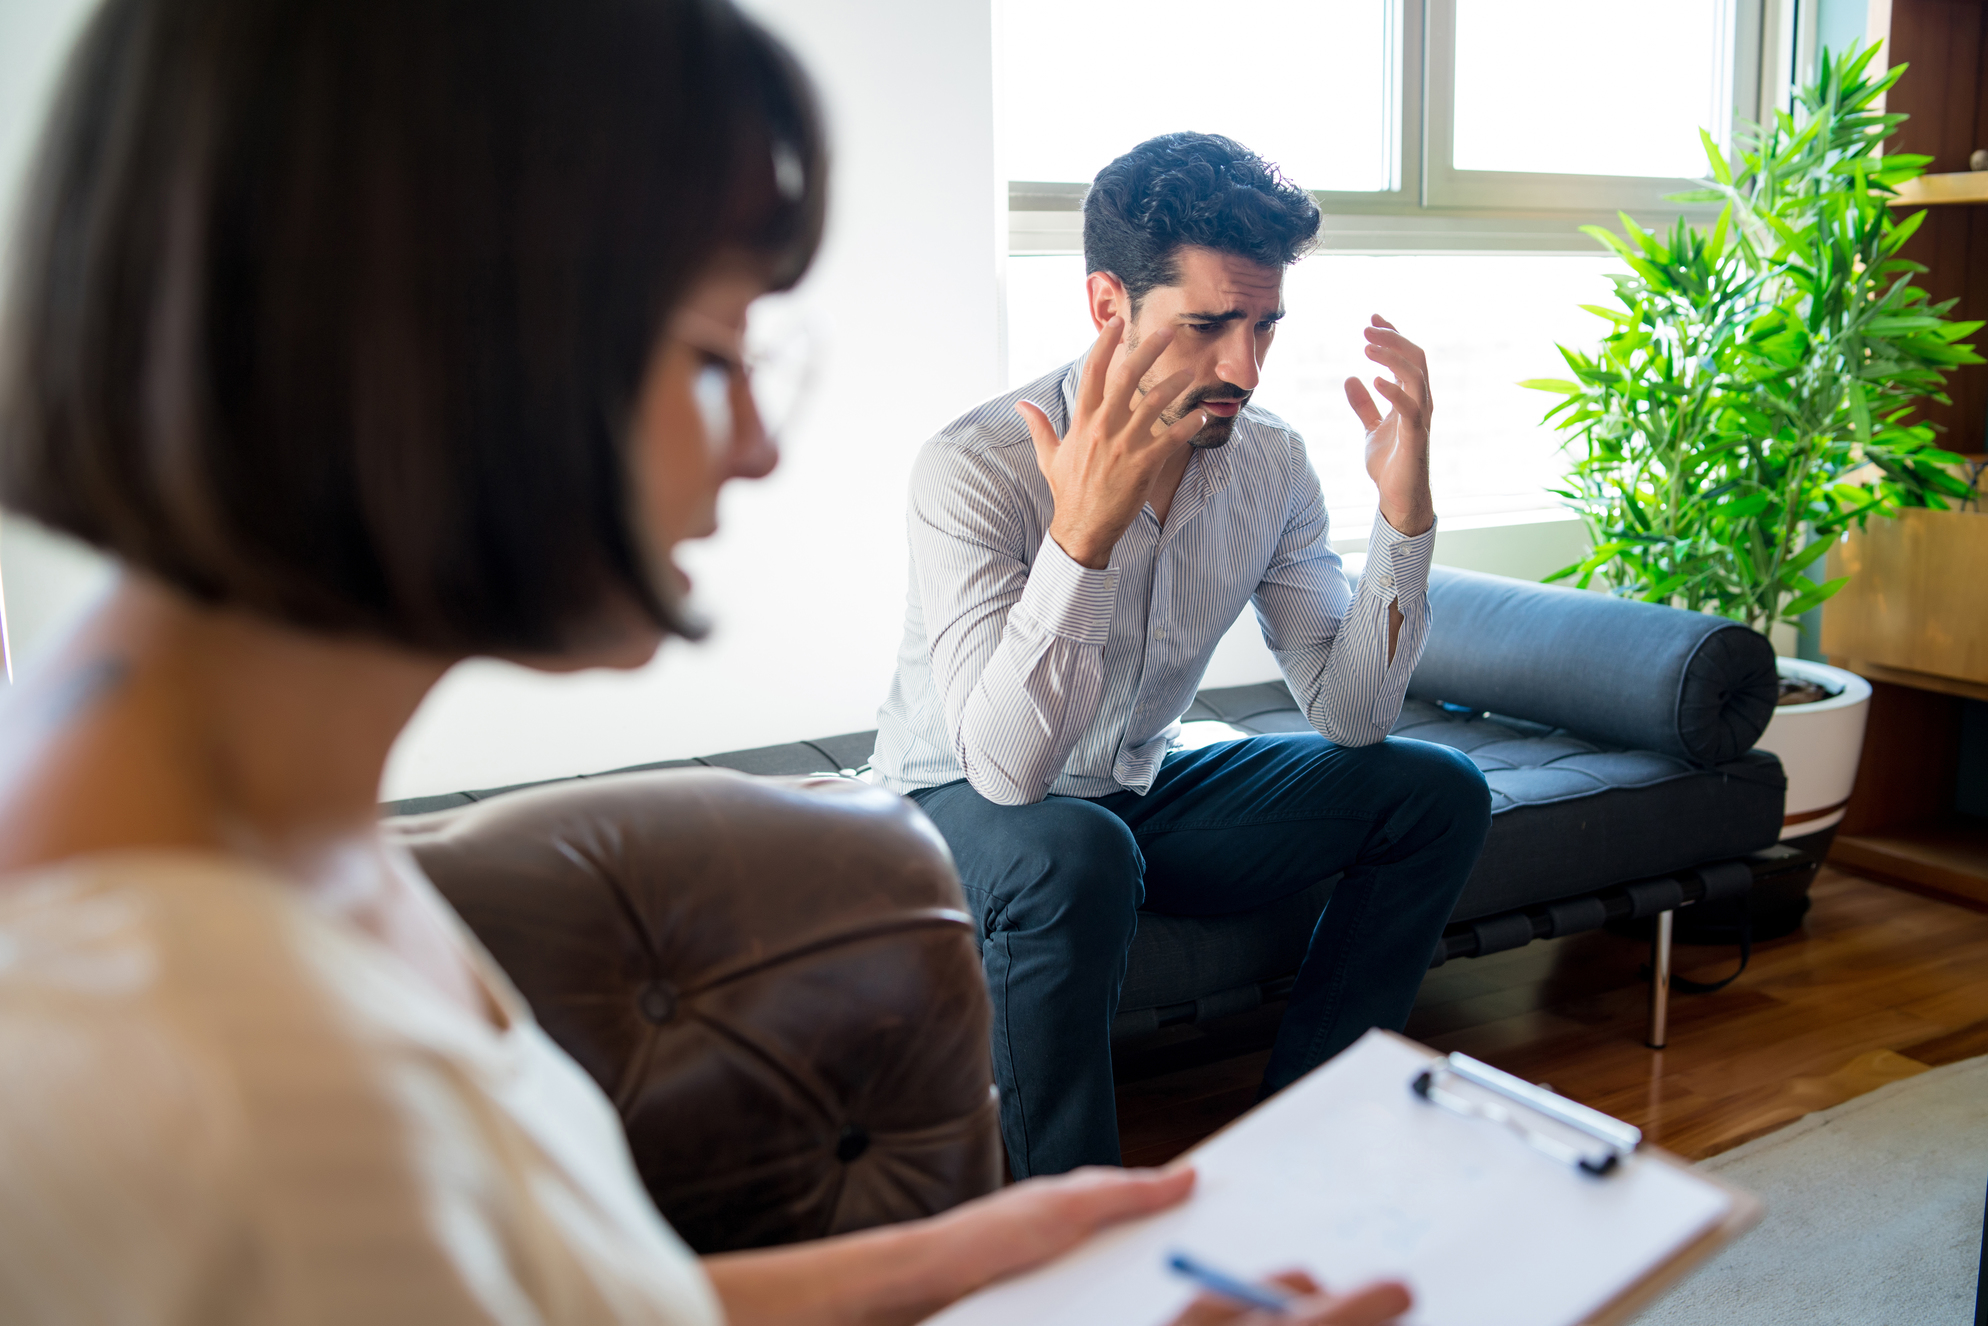 counseling session for disorders and issues